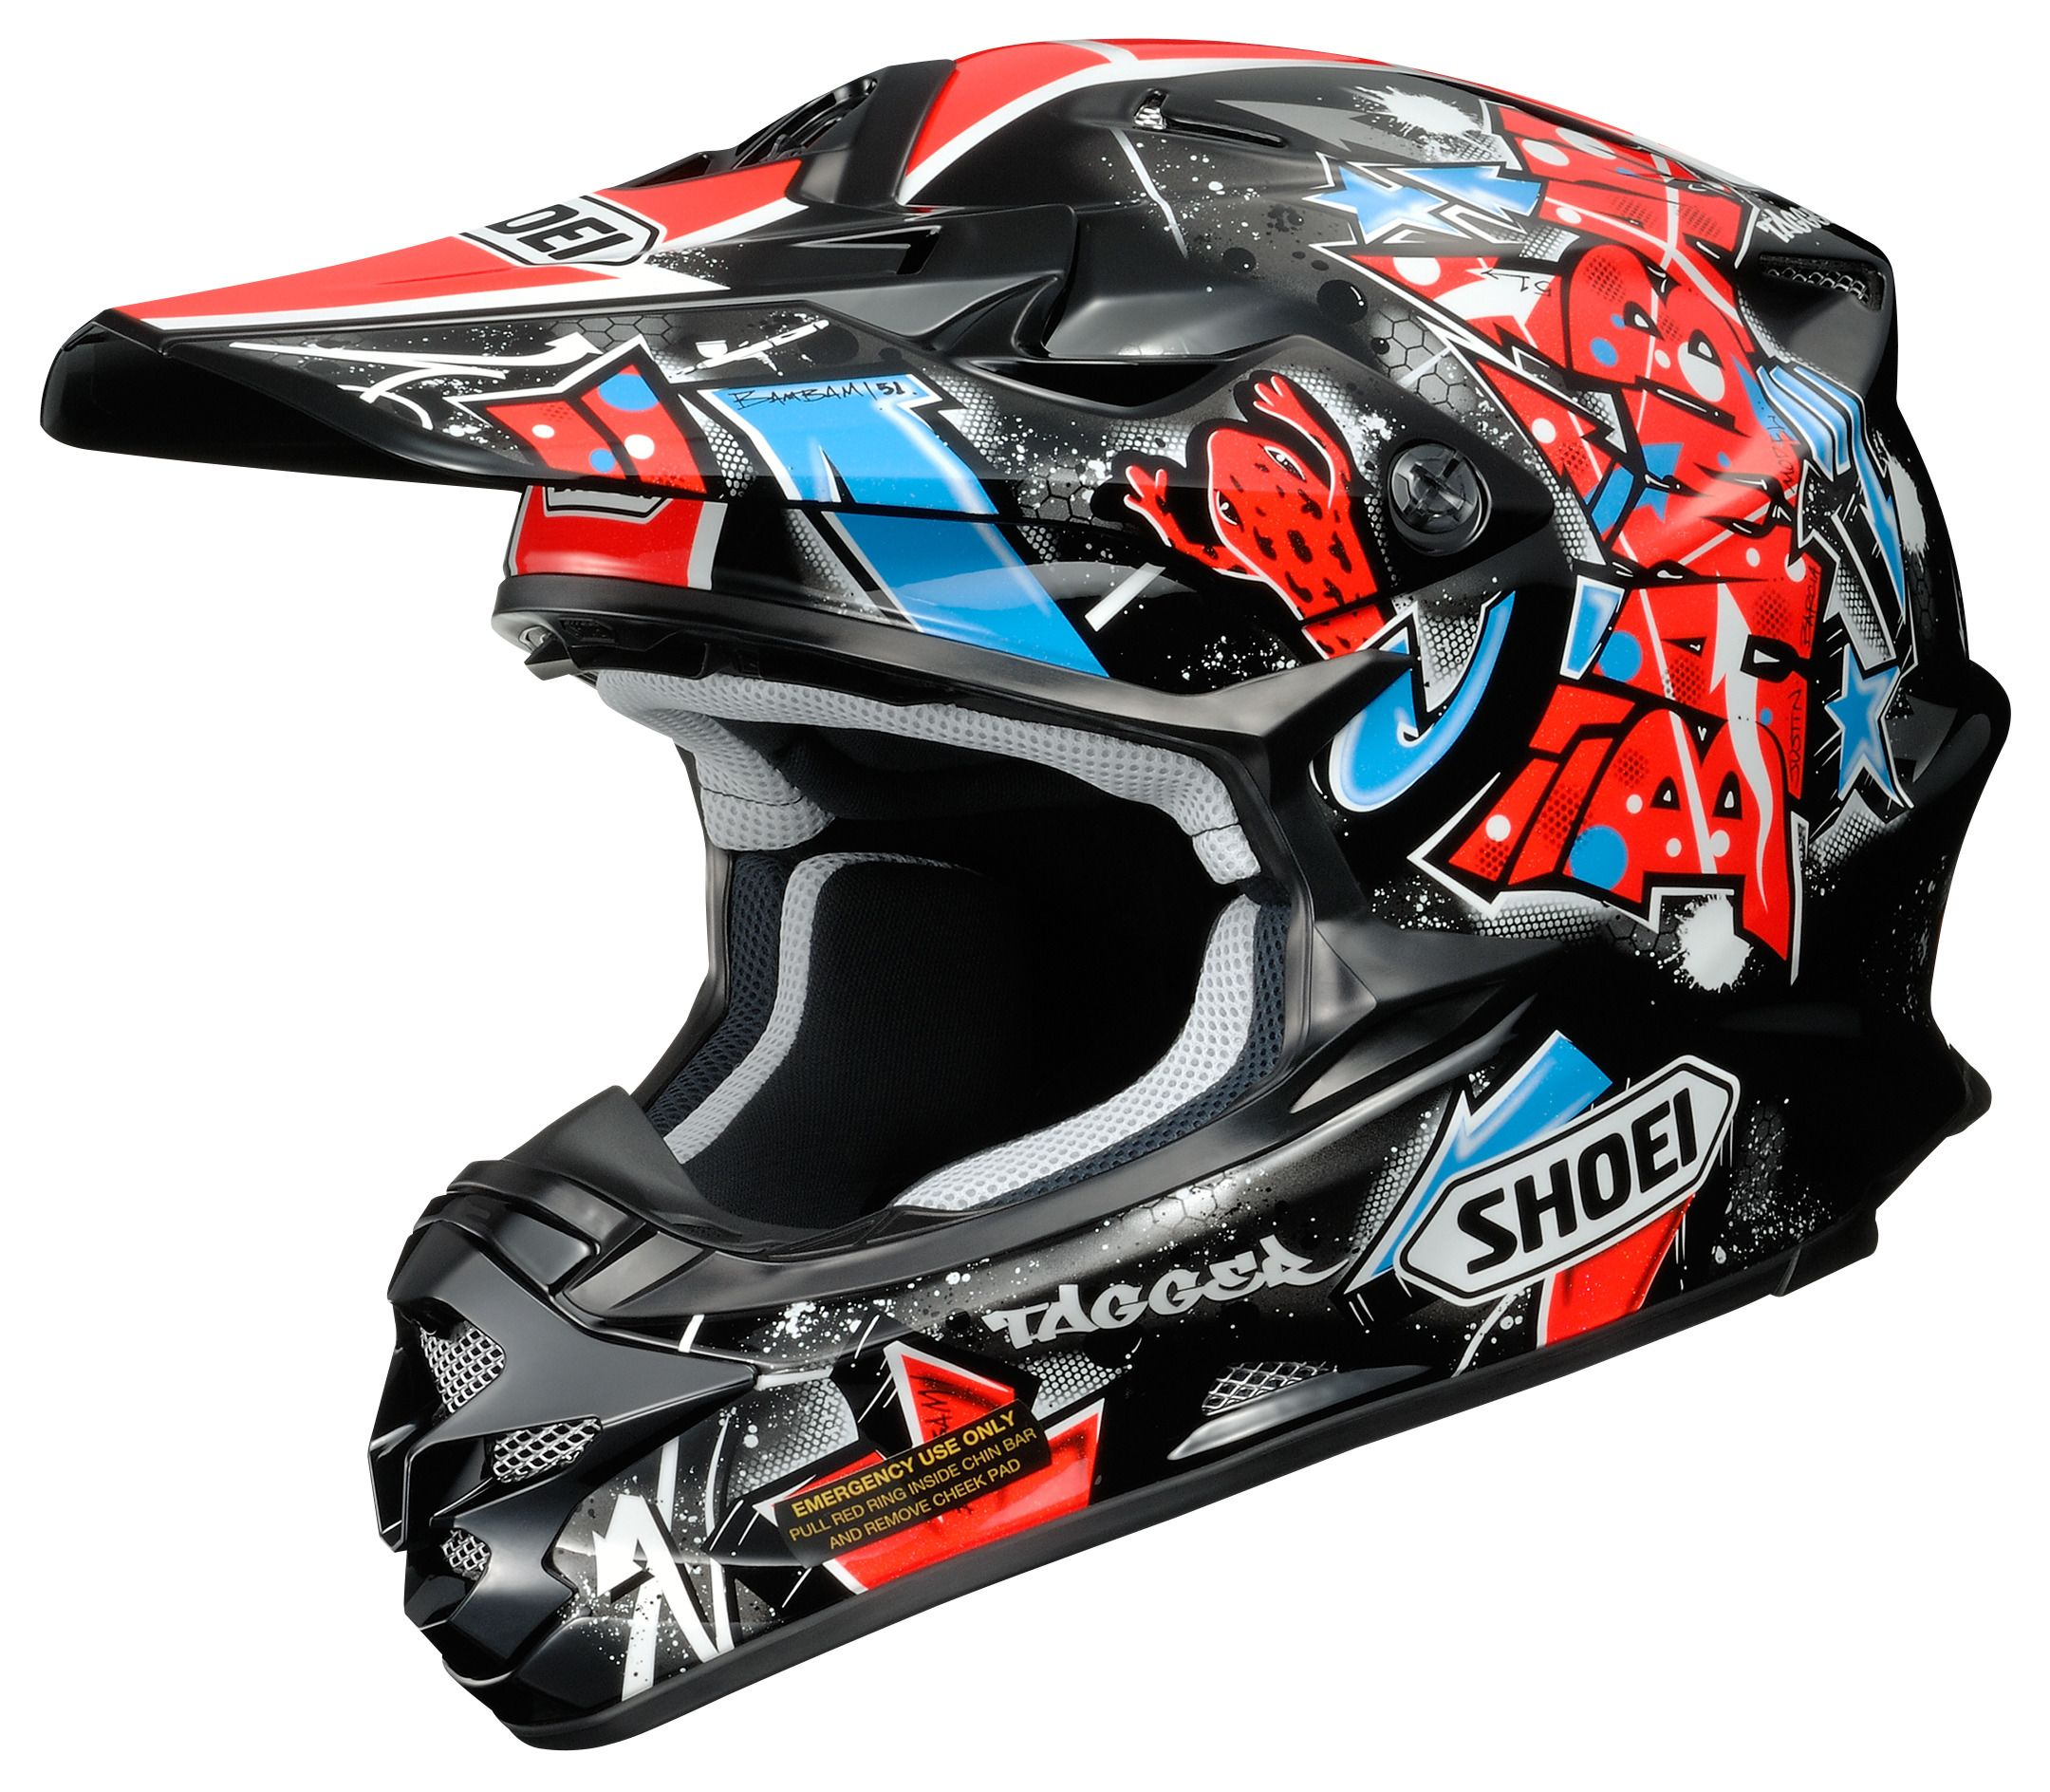 shoei vfx w barcia helmet revzilla. Black Bedroom Furniture Sets. Home Design Ideas